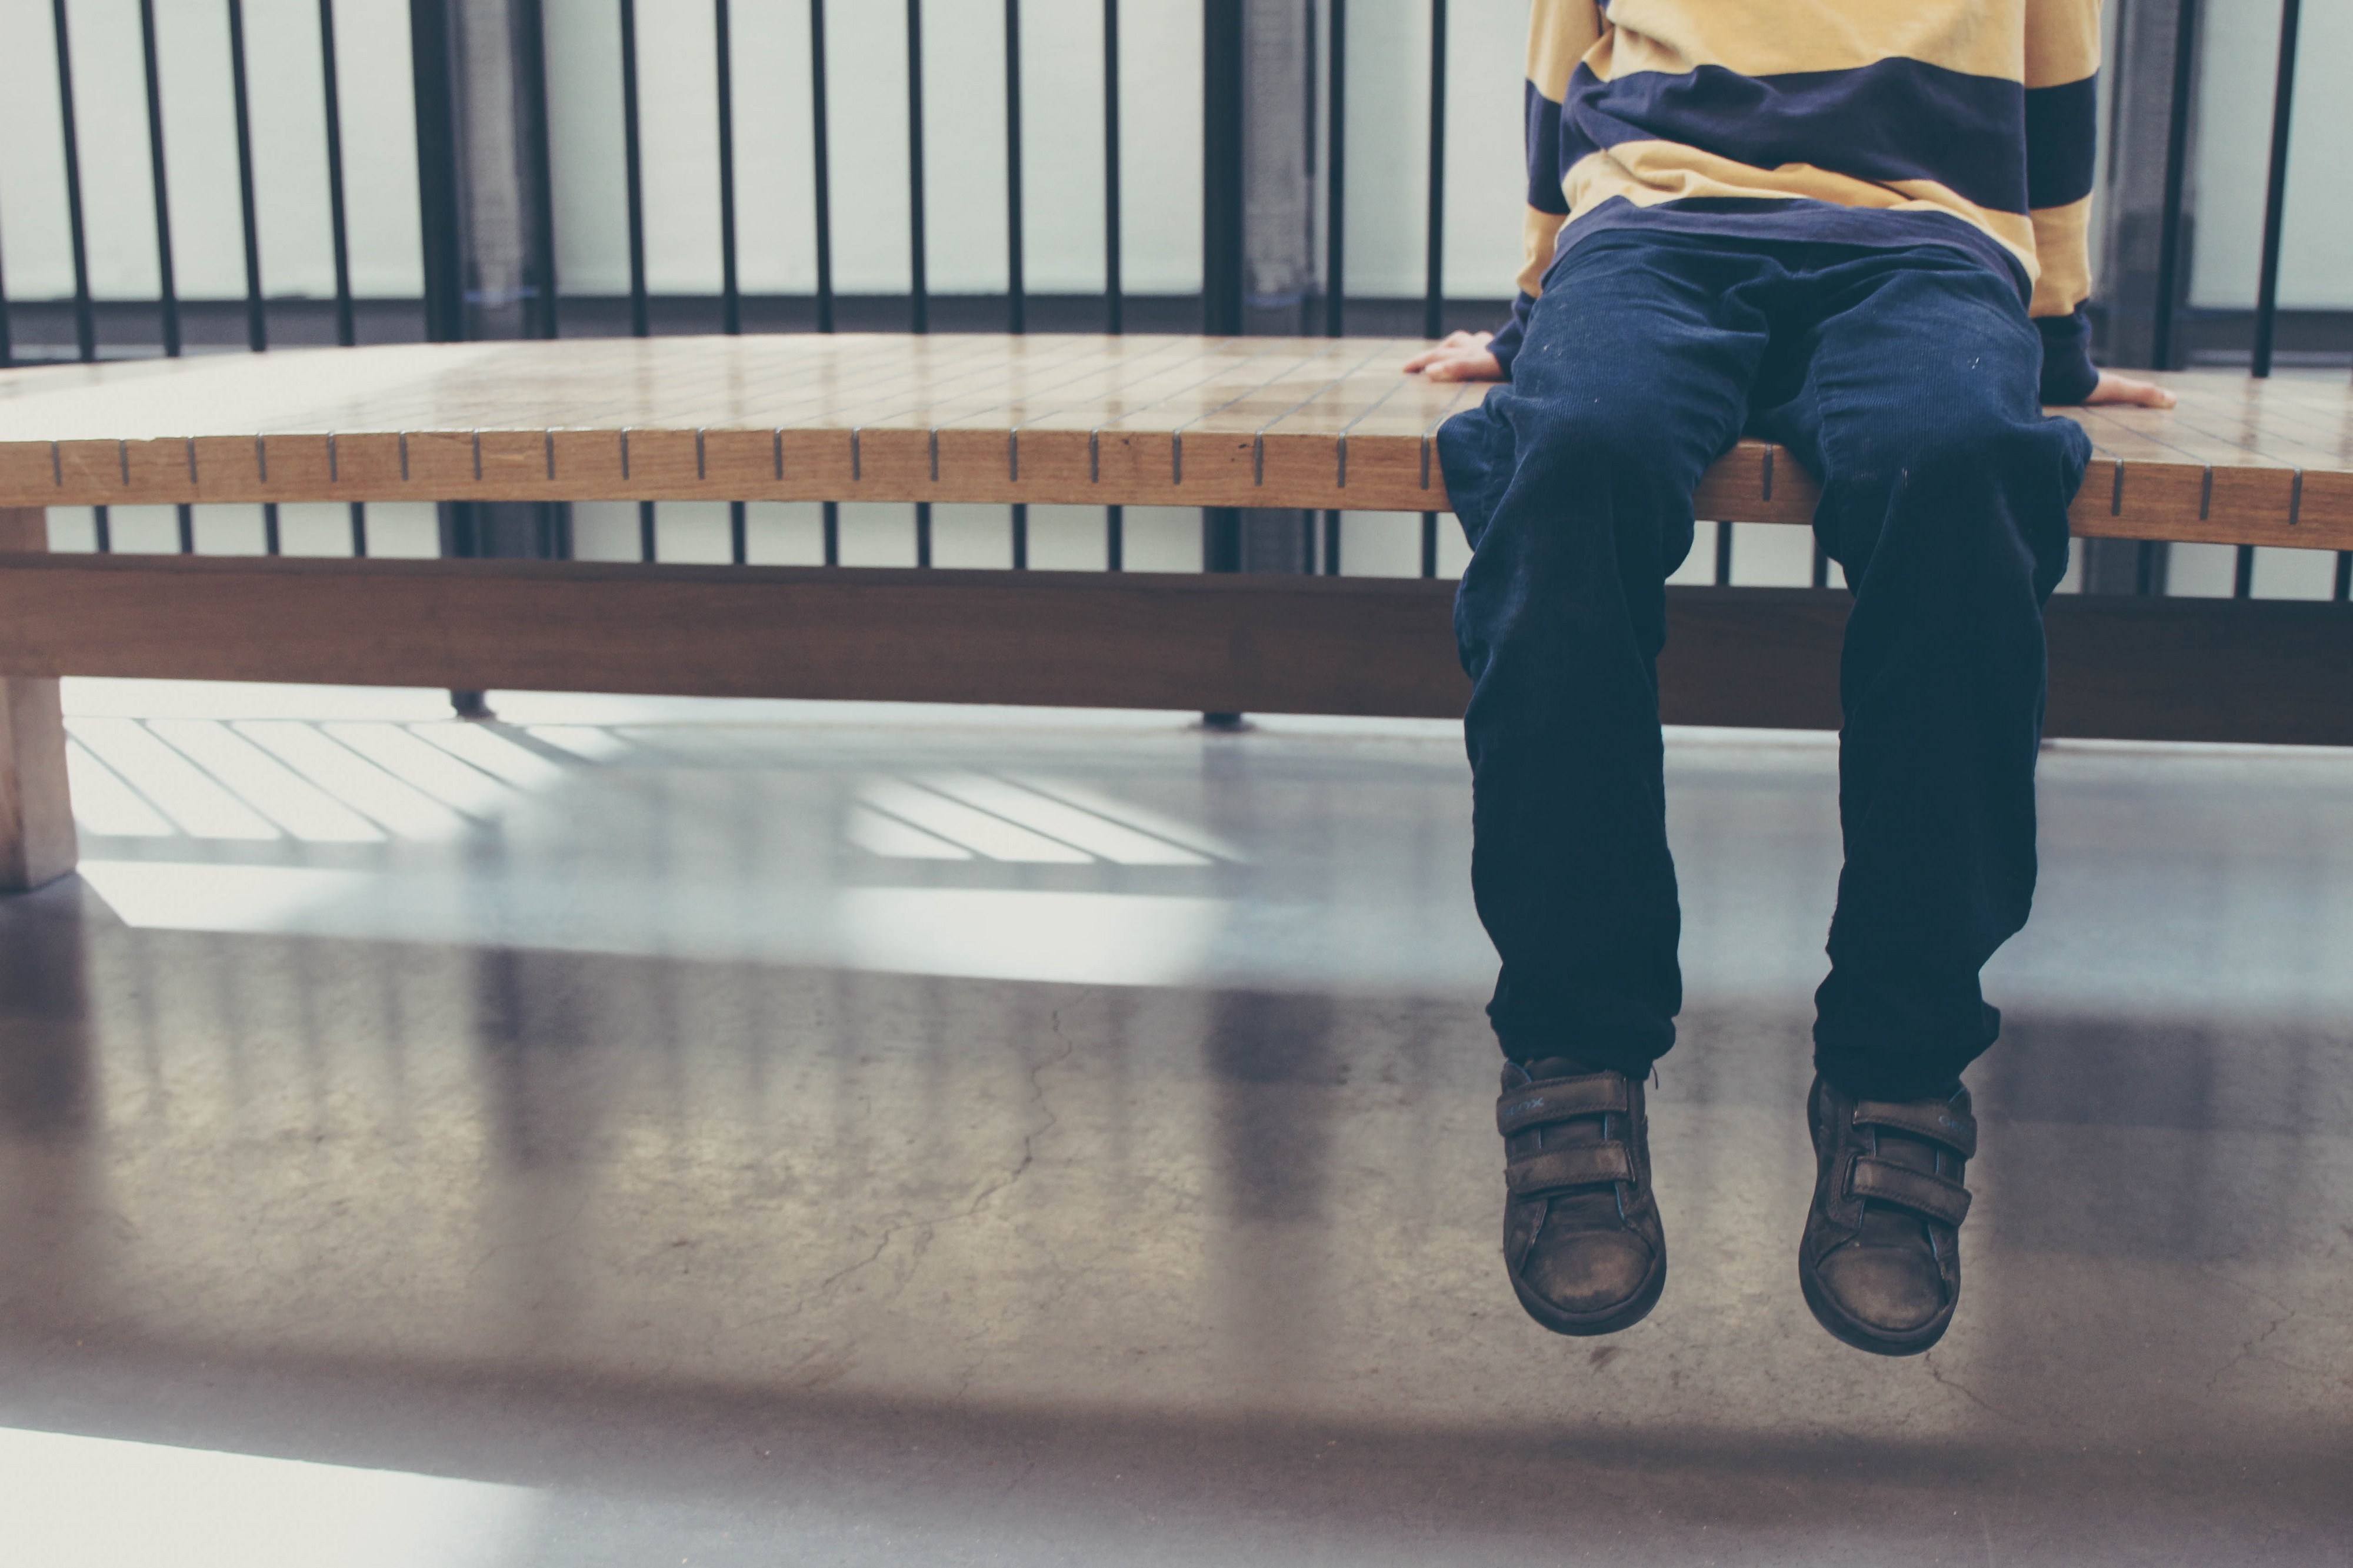 Child sitting on a bench head out of frame, with feet dangling above floor.